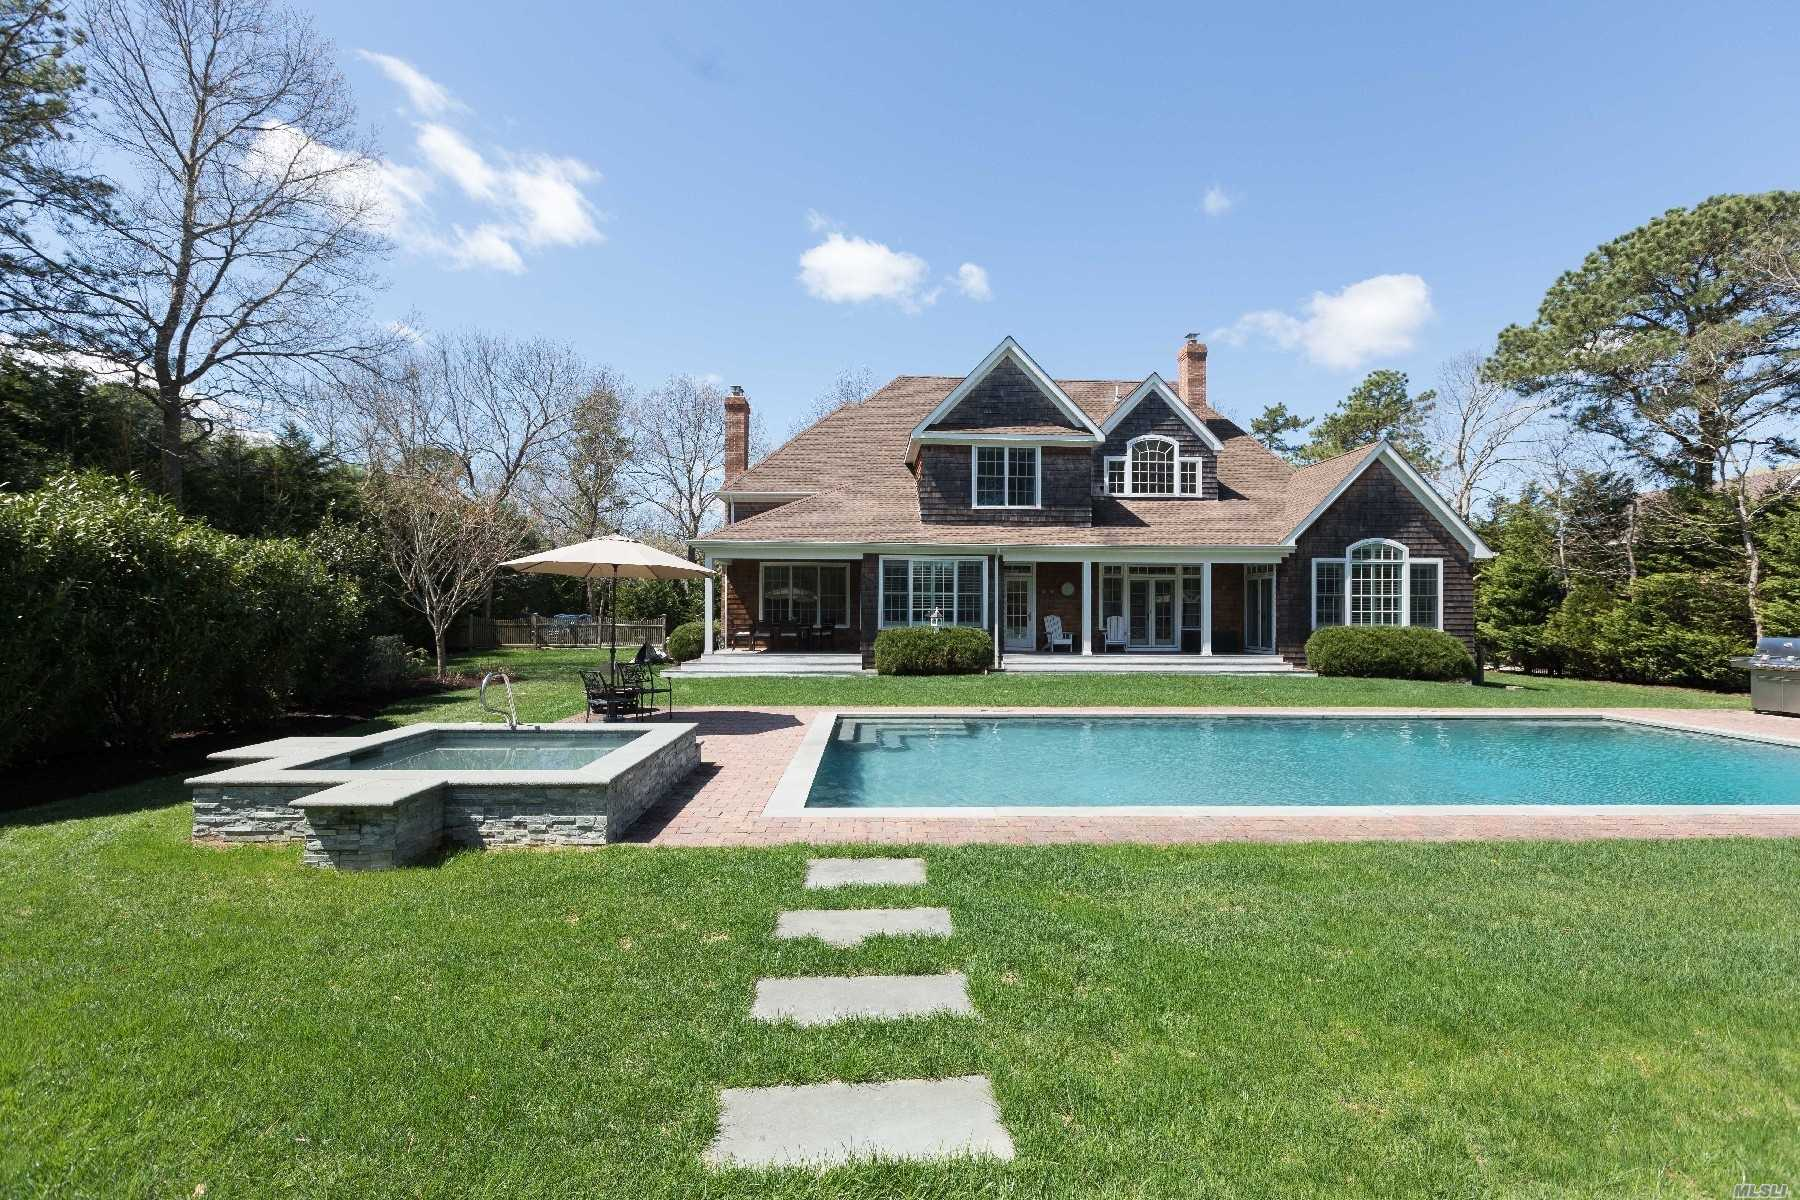 15 Post Fields Ln - Quogue, New York